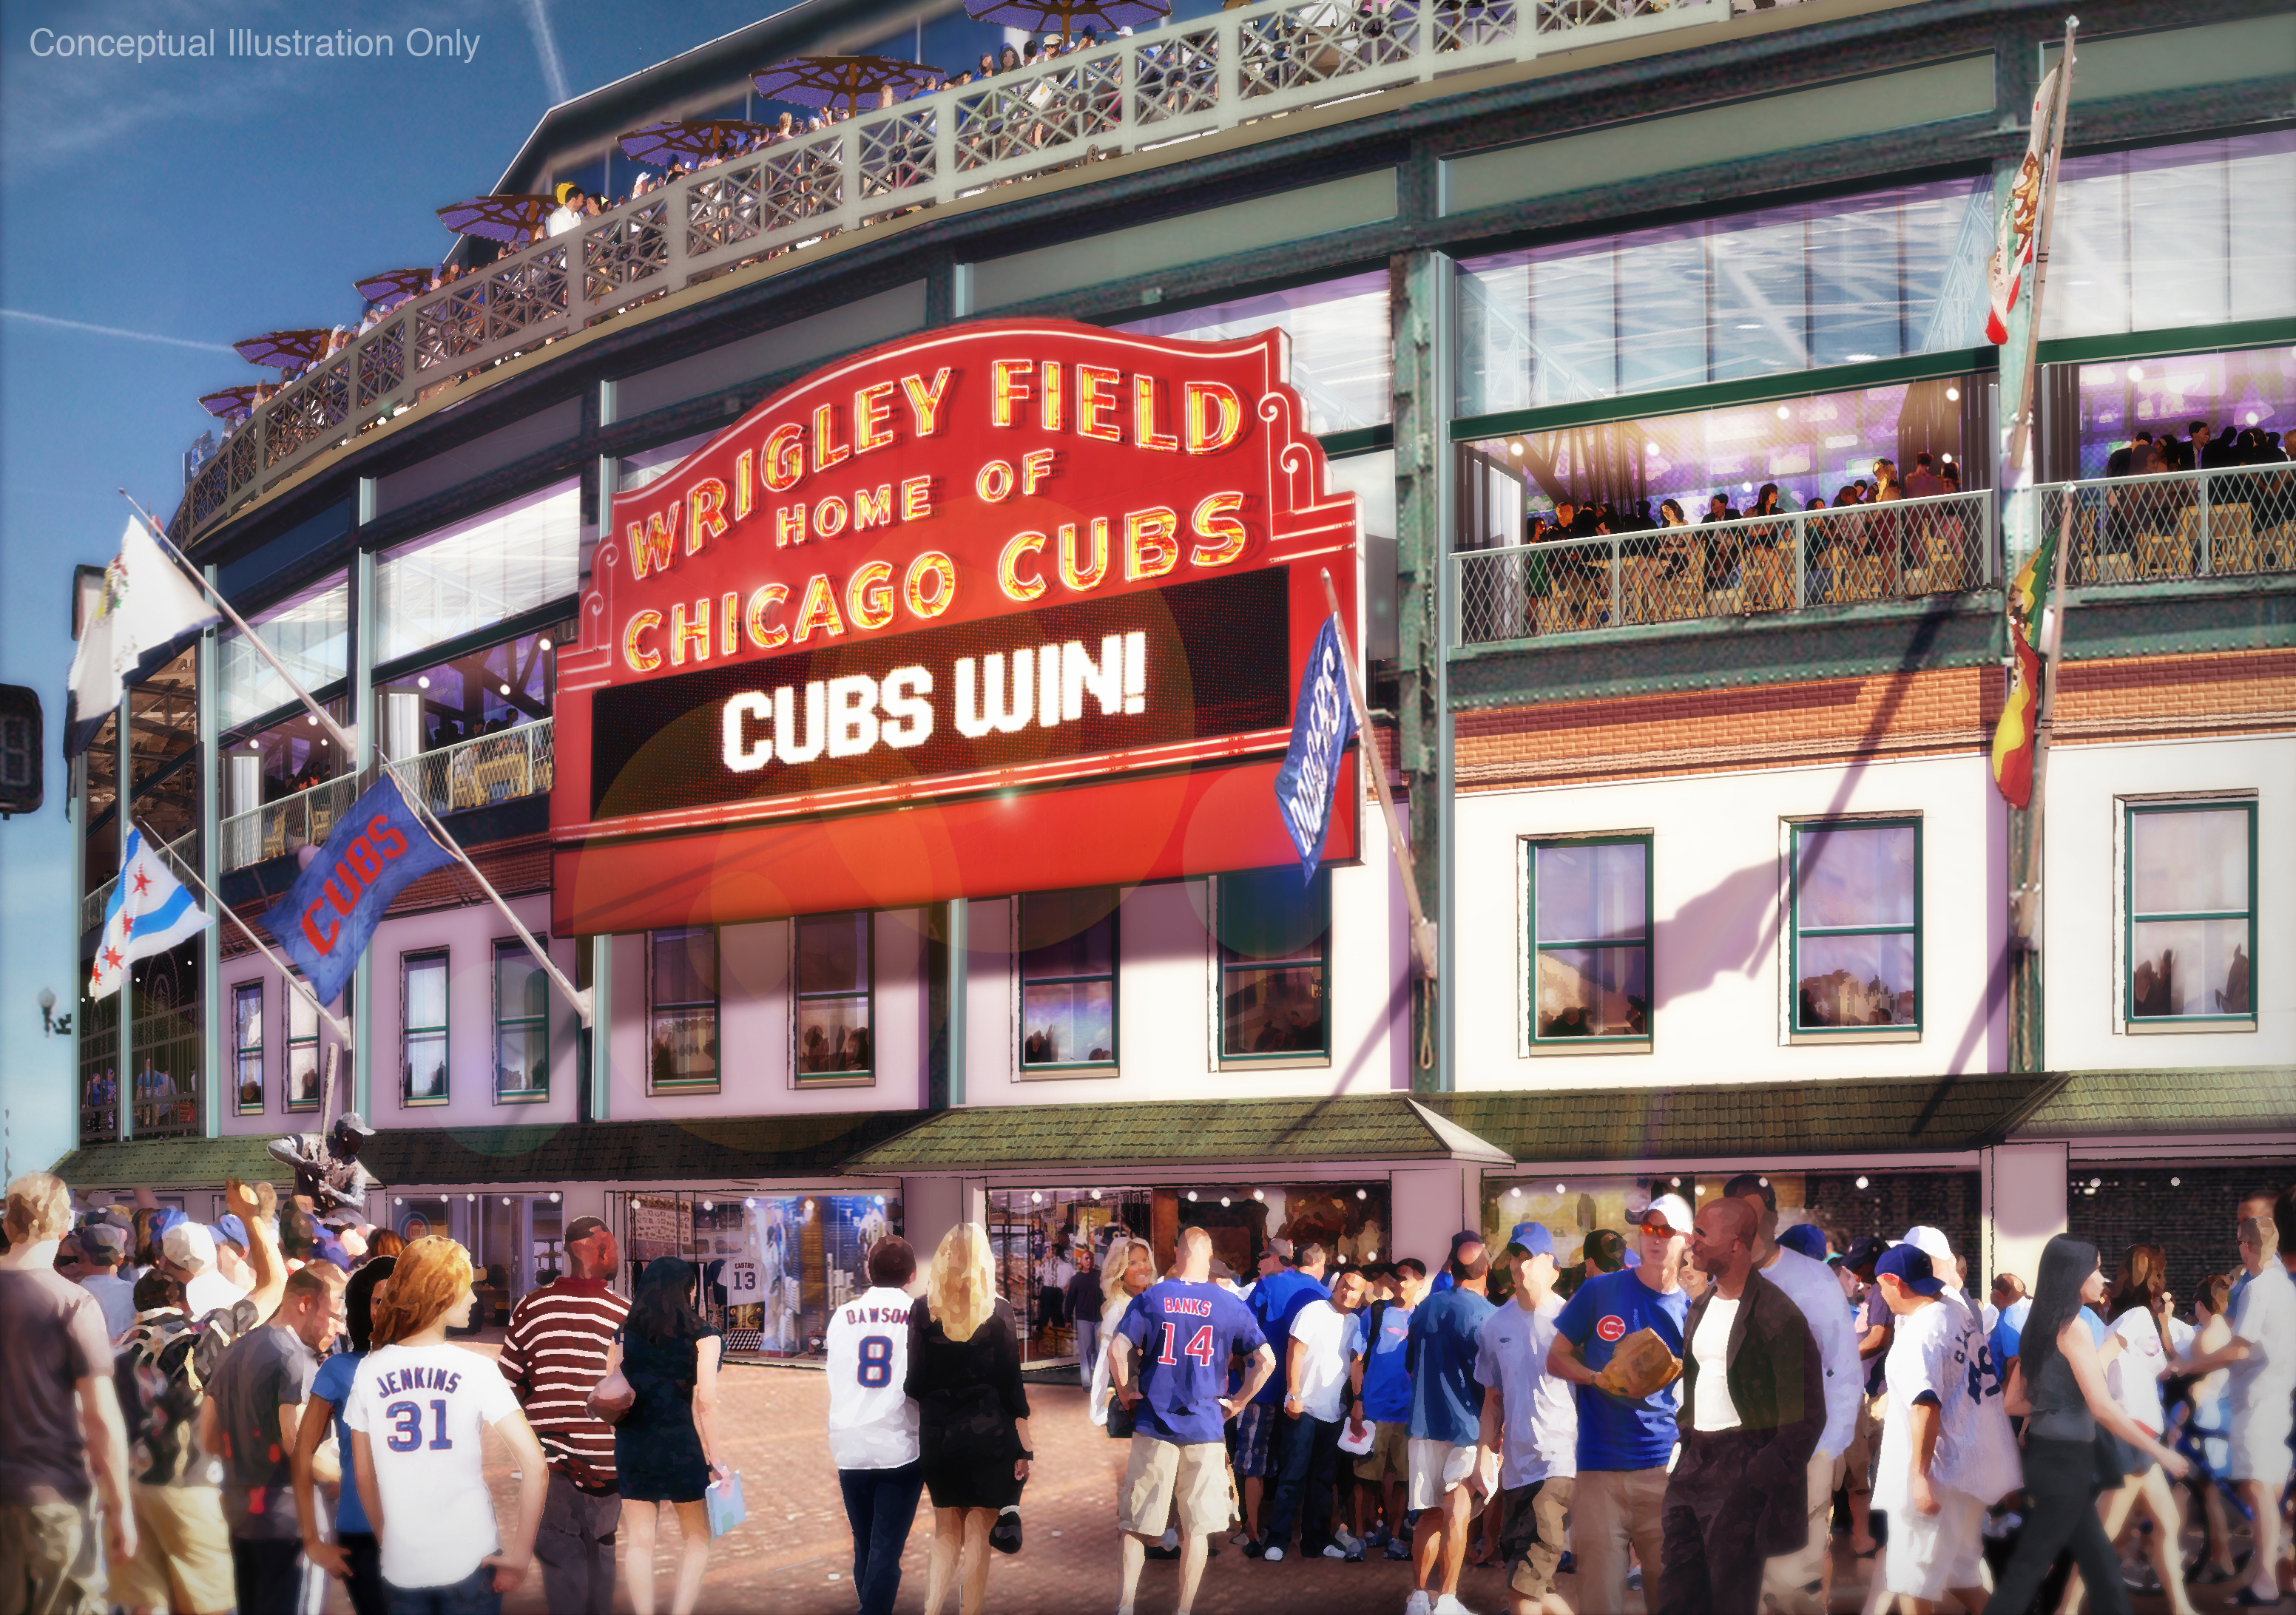 Obsessive Wrigley Renovation Watch: Rooftop Owner Discusses Status of Talks with Cubs